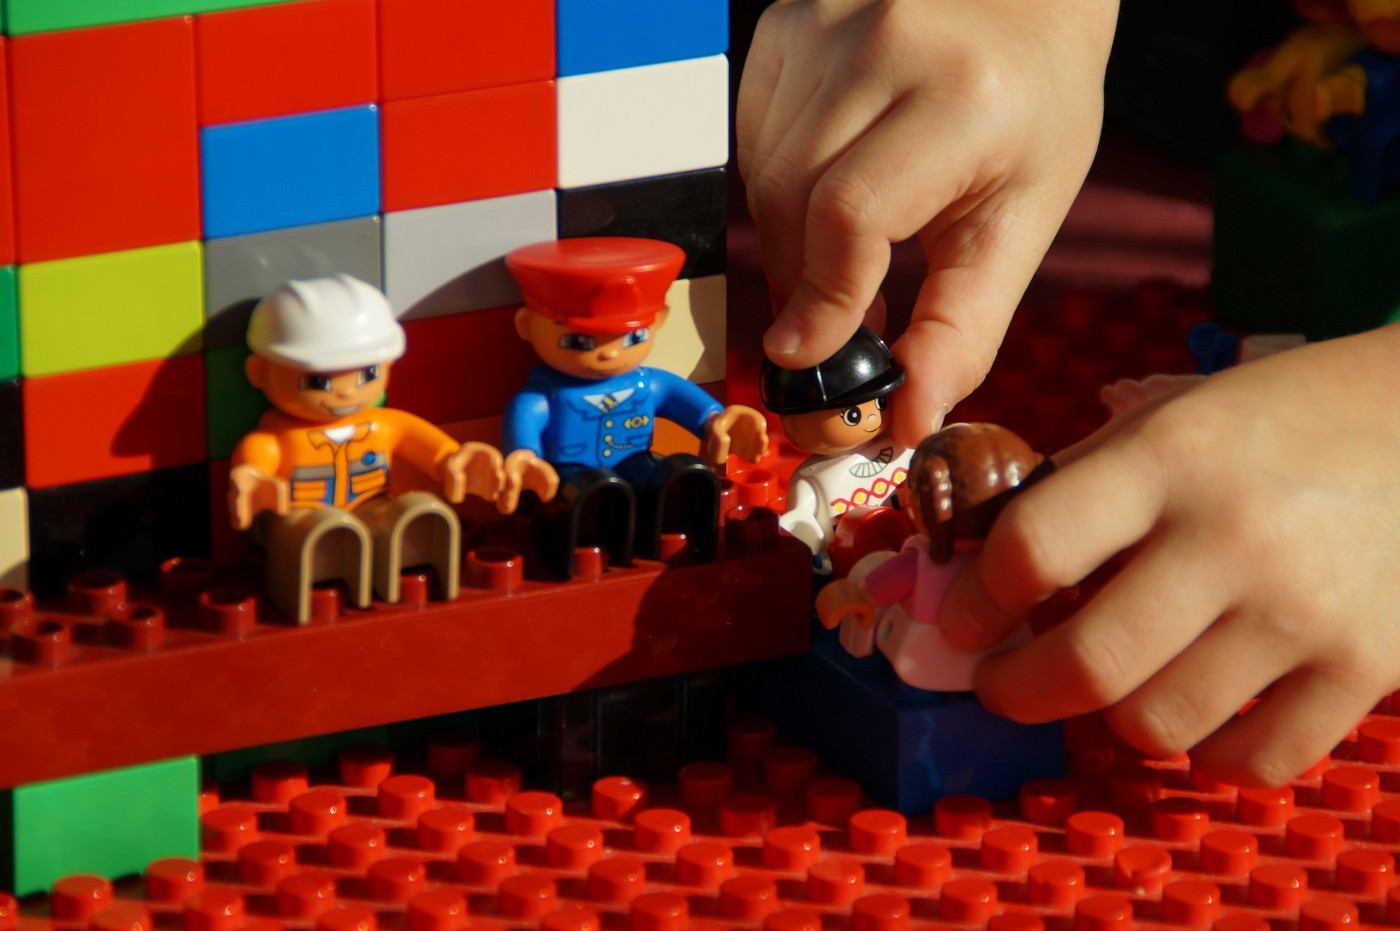 A child plays with Lego bricks and people